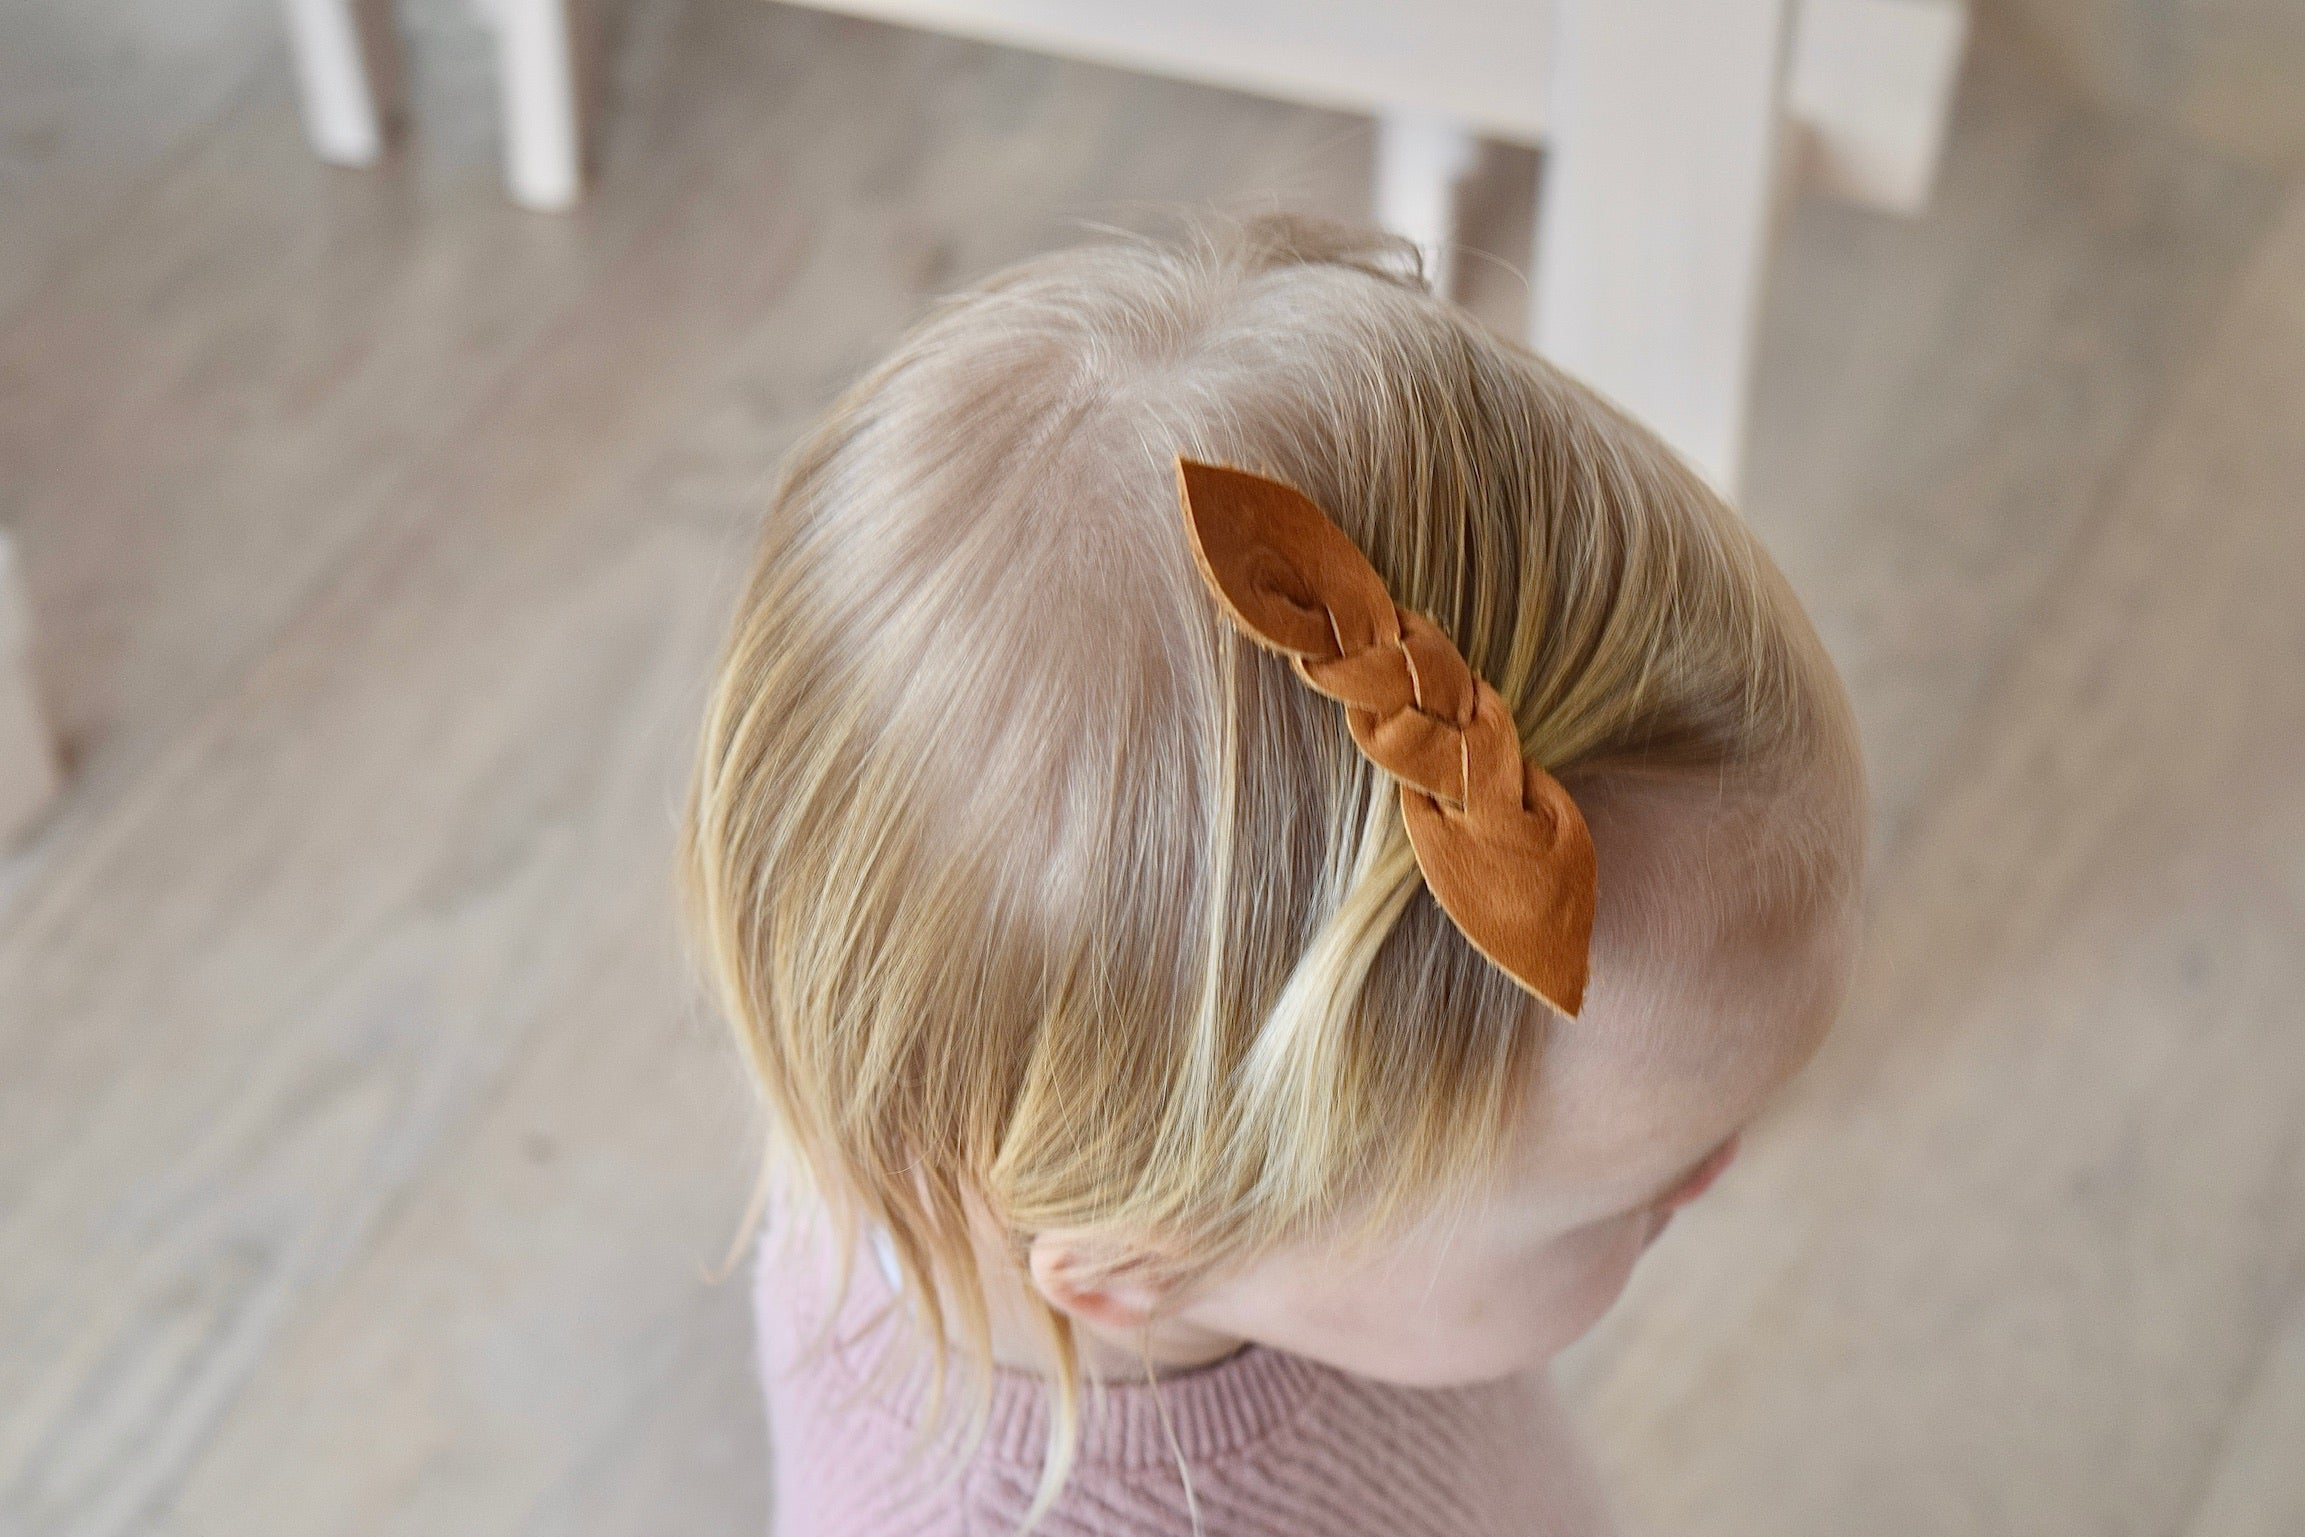 Perfect Braided Hair Clip - 3 pack caramel, black, slate